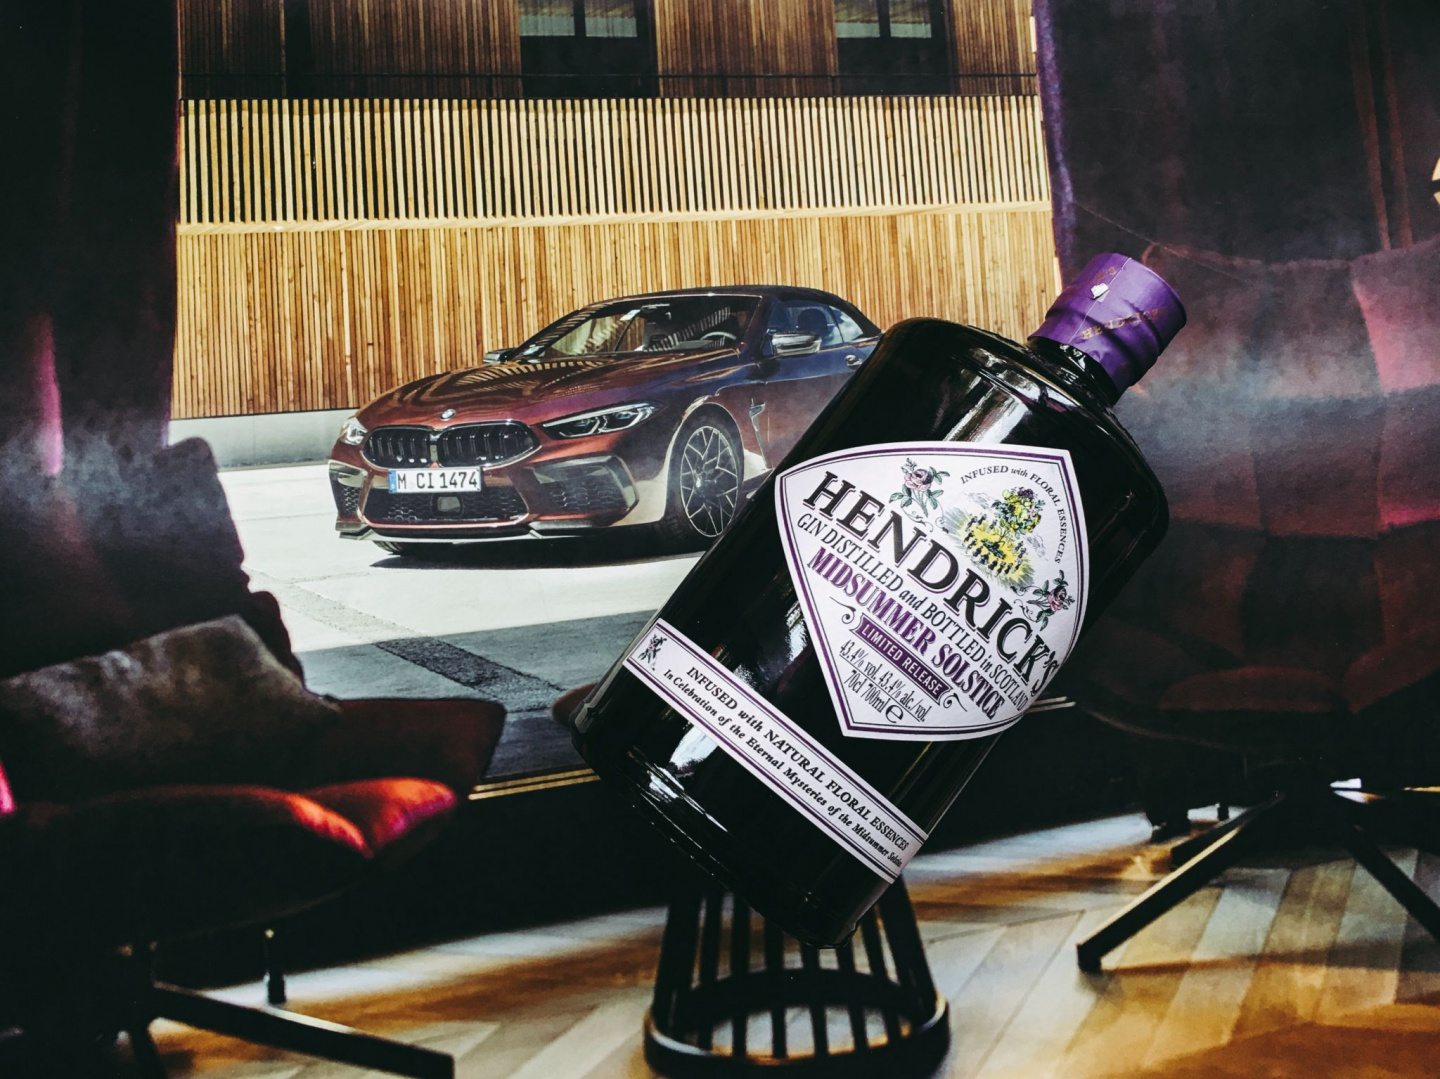 hendricks midsummer solstice gentlemens journey